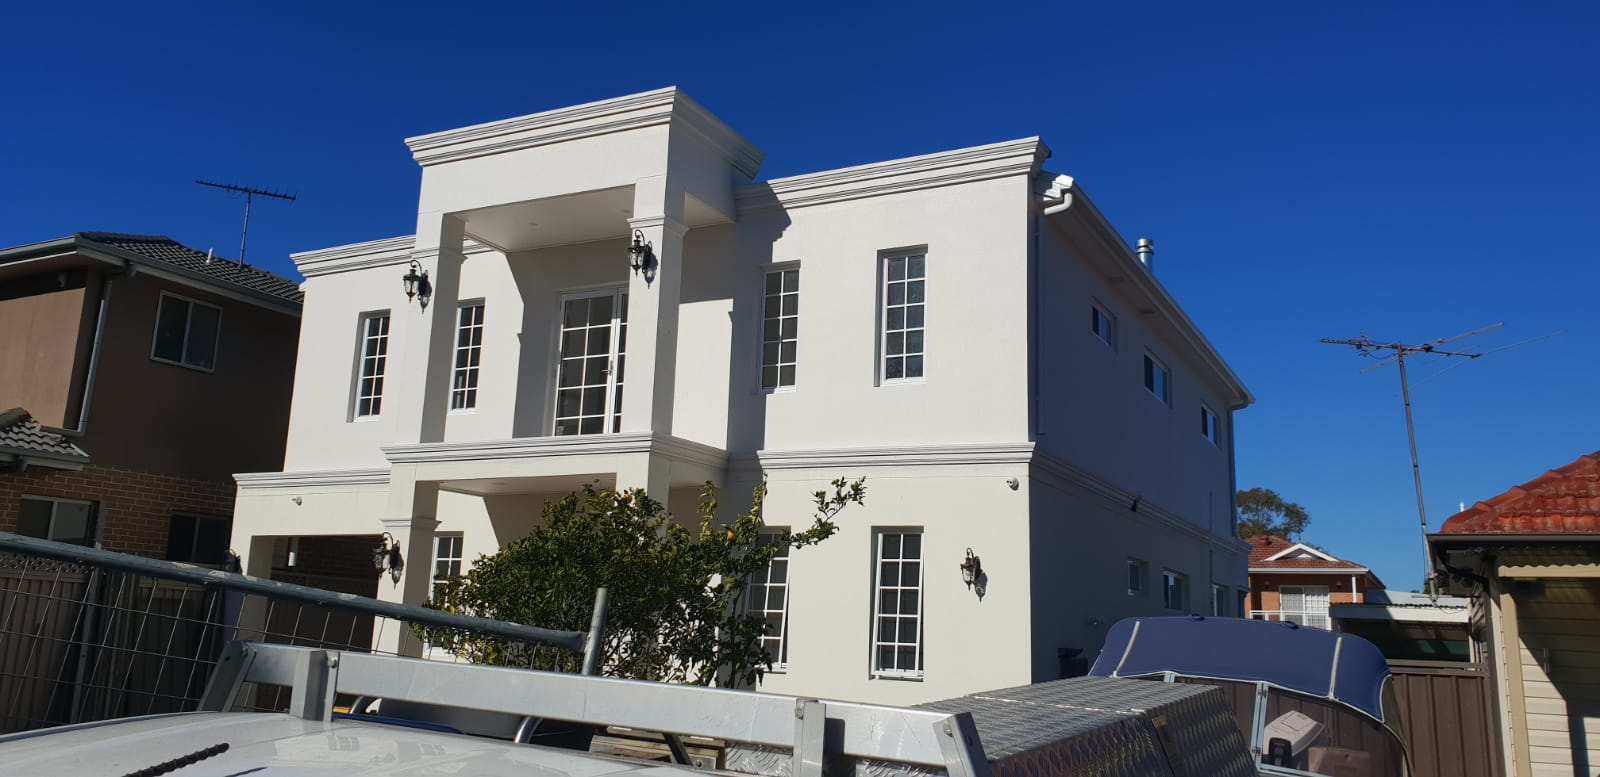 Rendering job in Sydney nearing completion